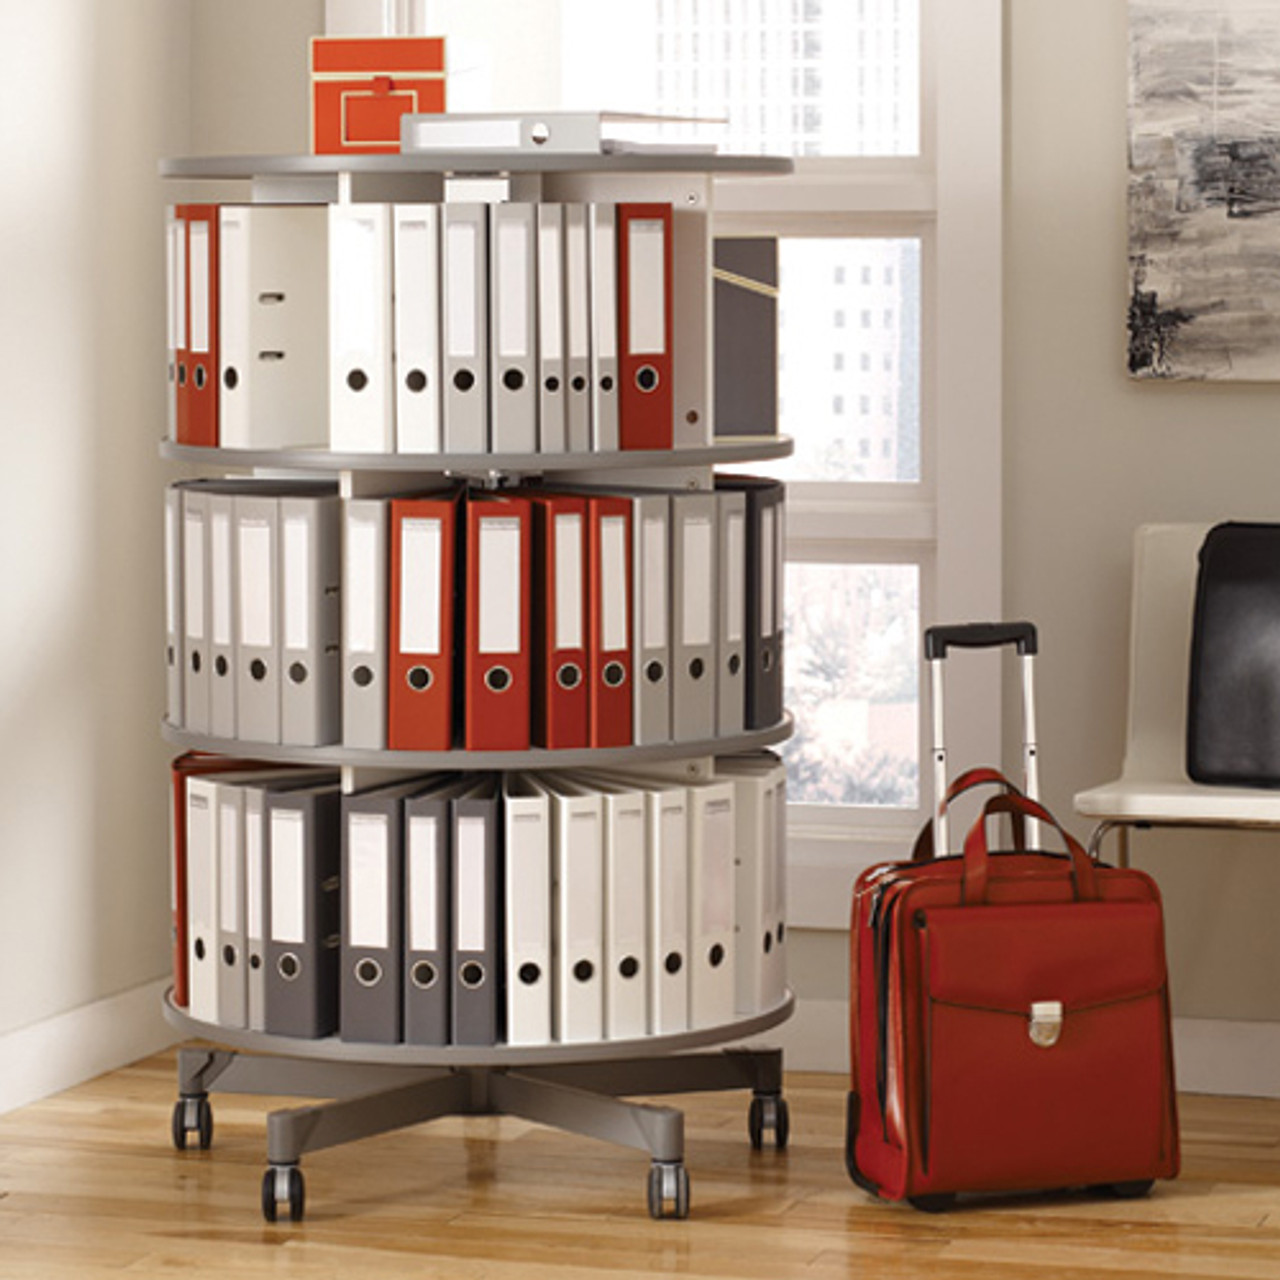 Moll One Turn Binder & File Carousel, 5-Tier Shelving